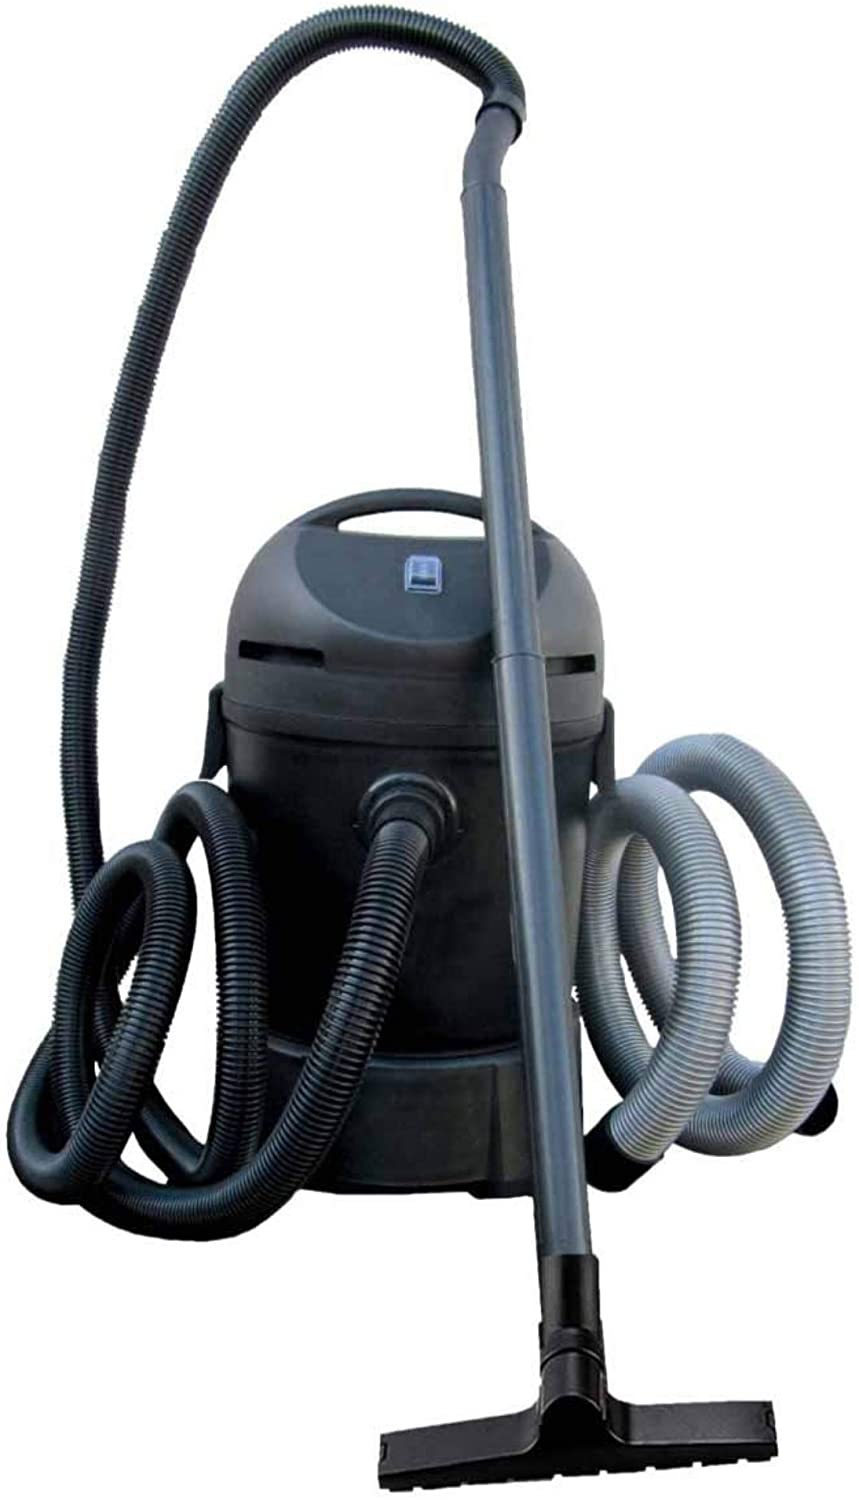 HALF OFF PONDS CleanSweep 1400 Pond Vacuum with a 13' Intake Suction Hose, 4 Extension Tubes, 3 Vacuum Nozzles, a 6.5 Foot Output Hose, and a Debris Collection Bag